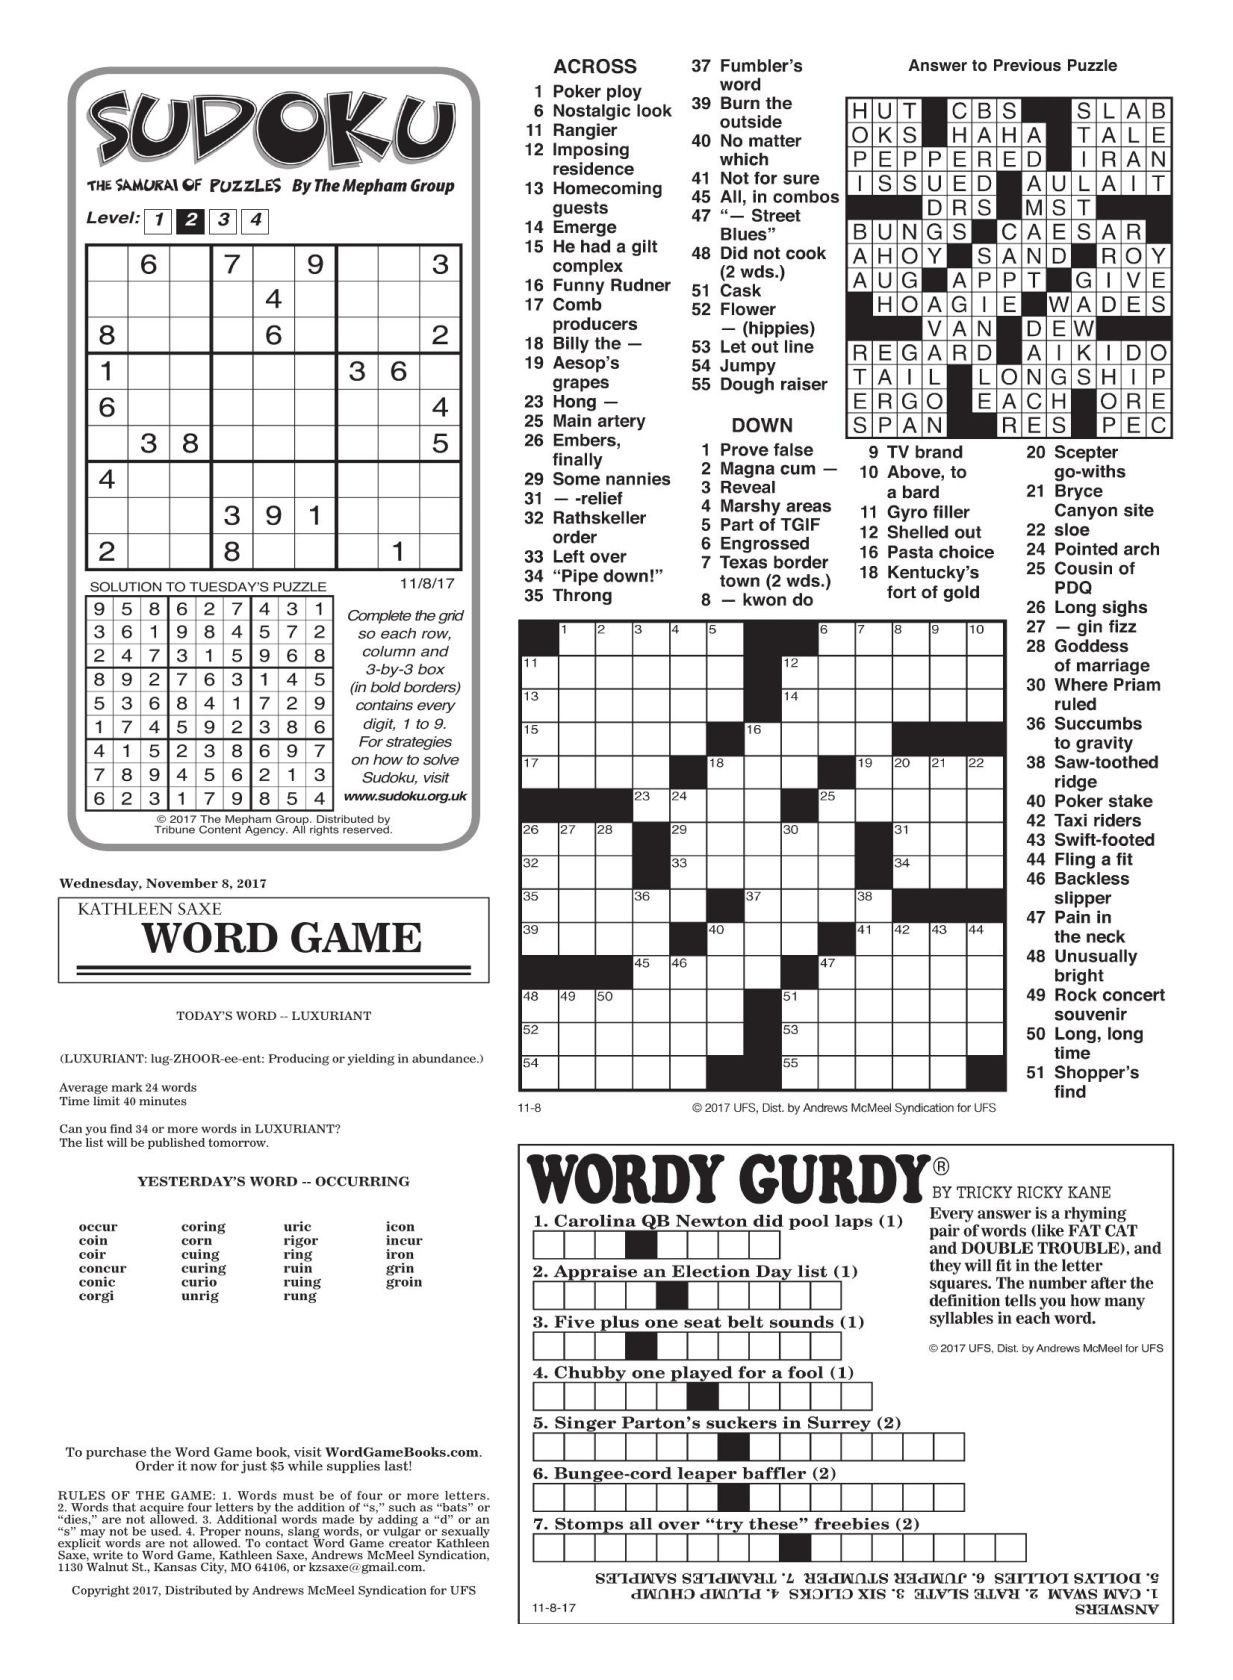 Printable Crossword Puzzles La Times Crossword Puzzle La Times - La Times Printable Crossword Puzzles November 2017